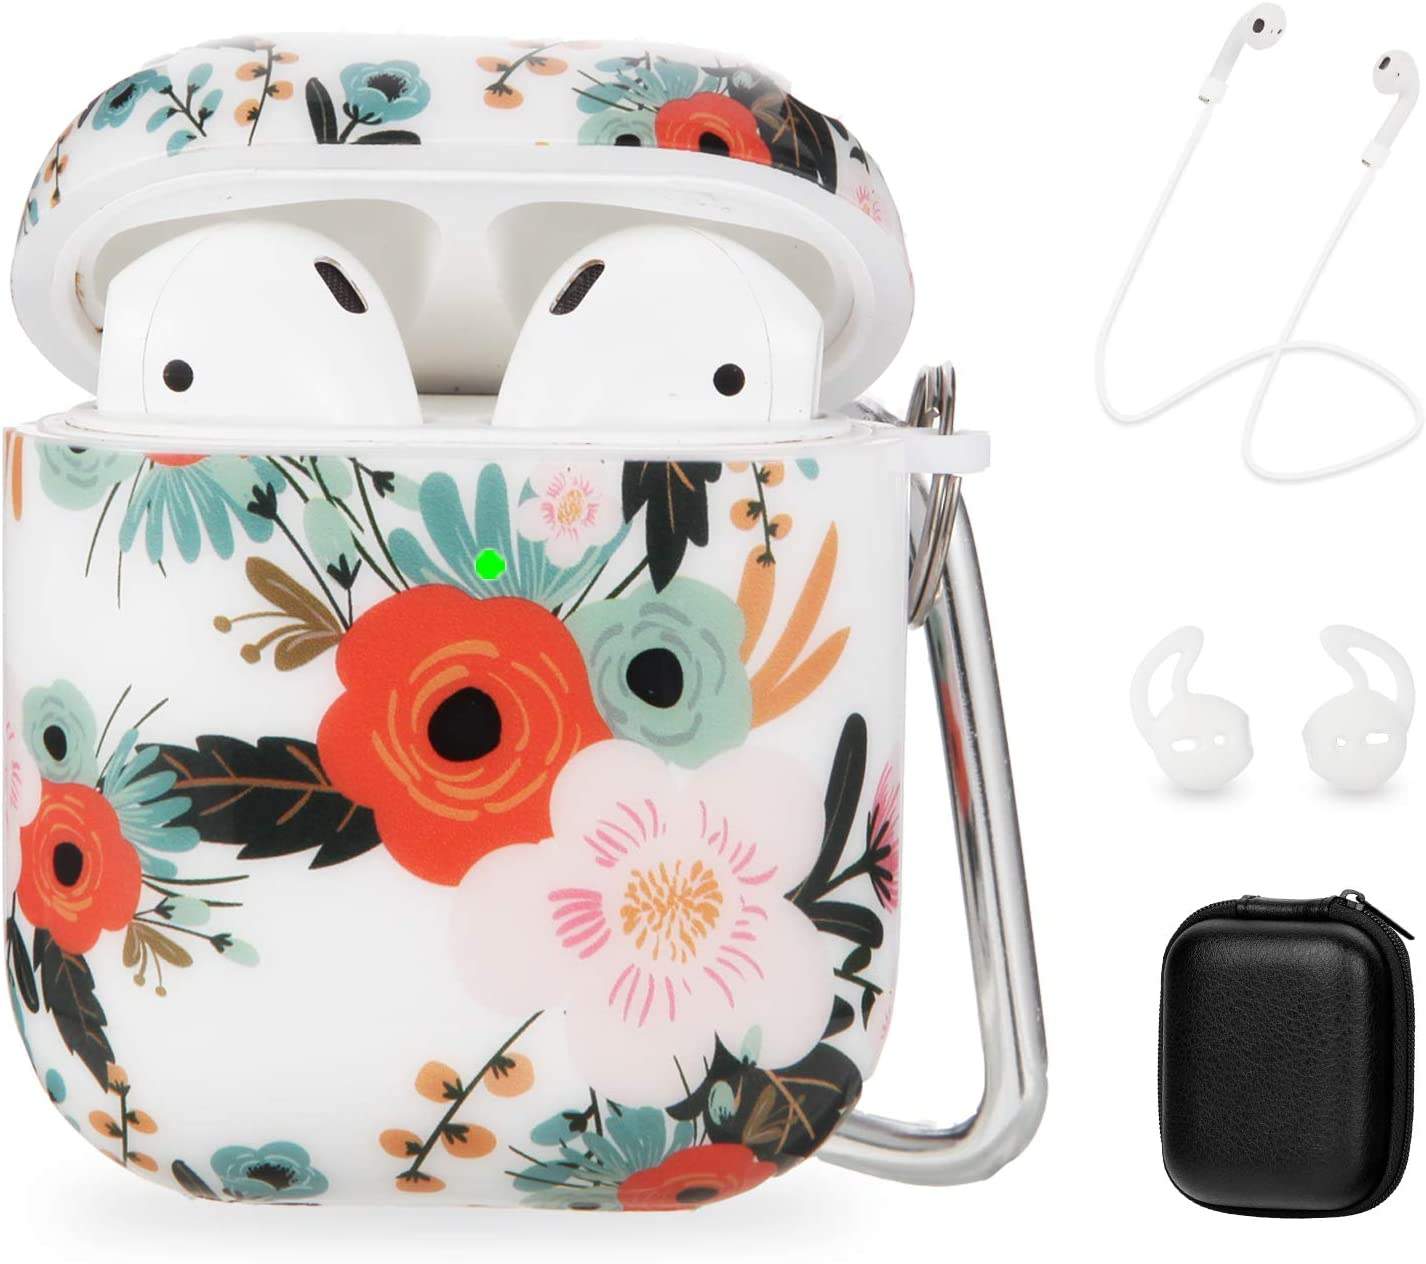 OLEBAND Air Podcase Case with Floral Pattern